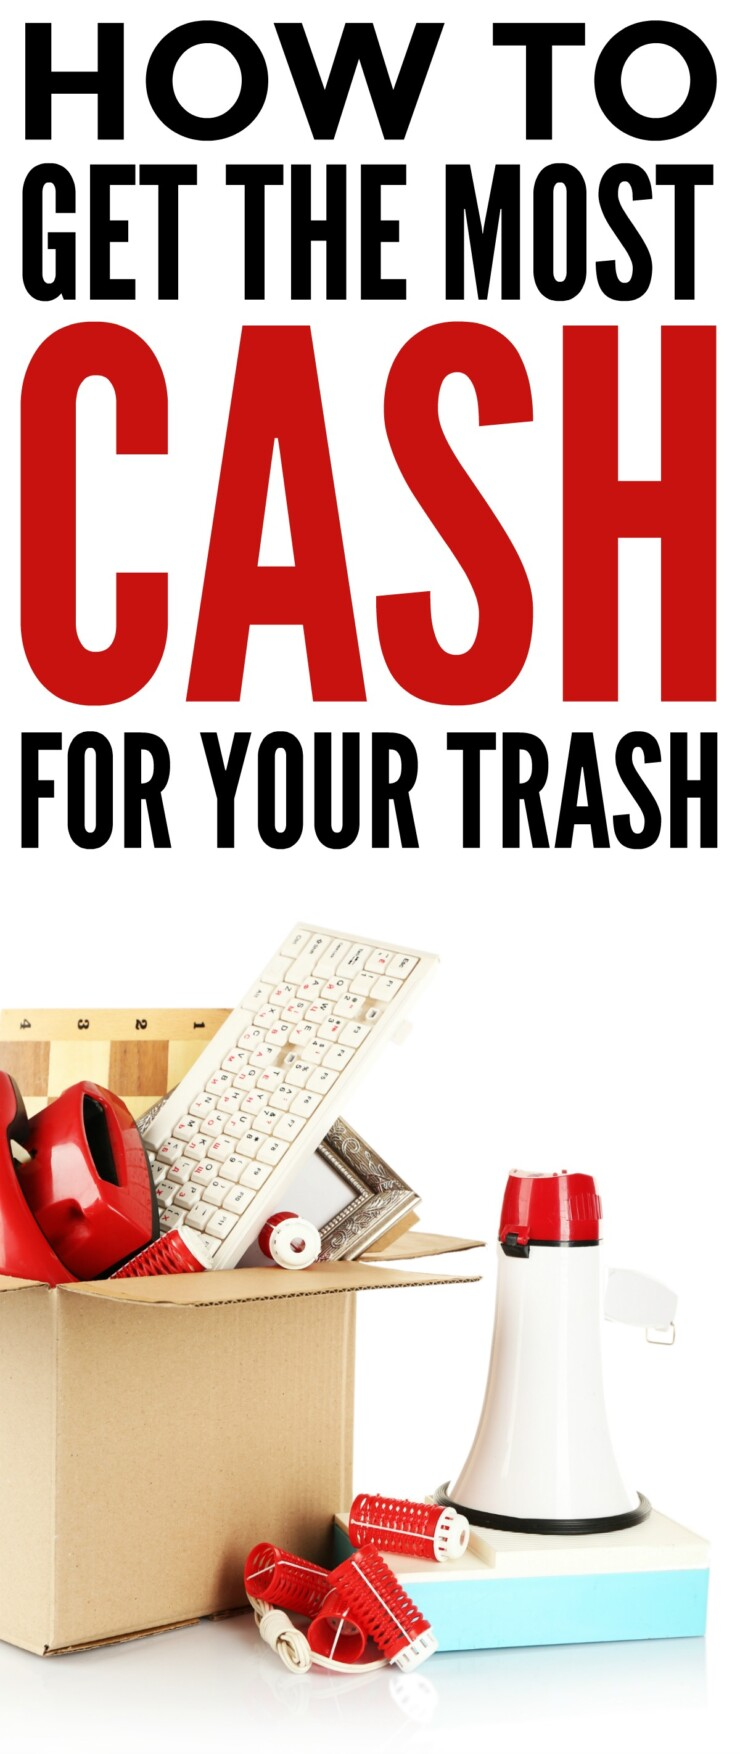 How to Get the Most Cash for Your Trash